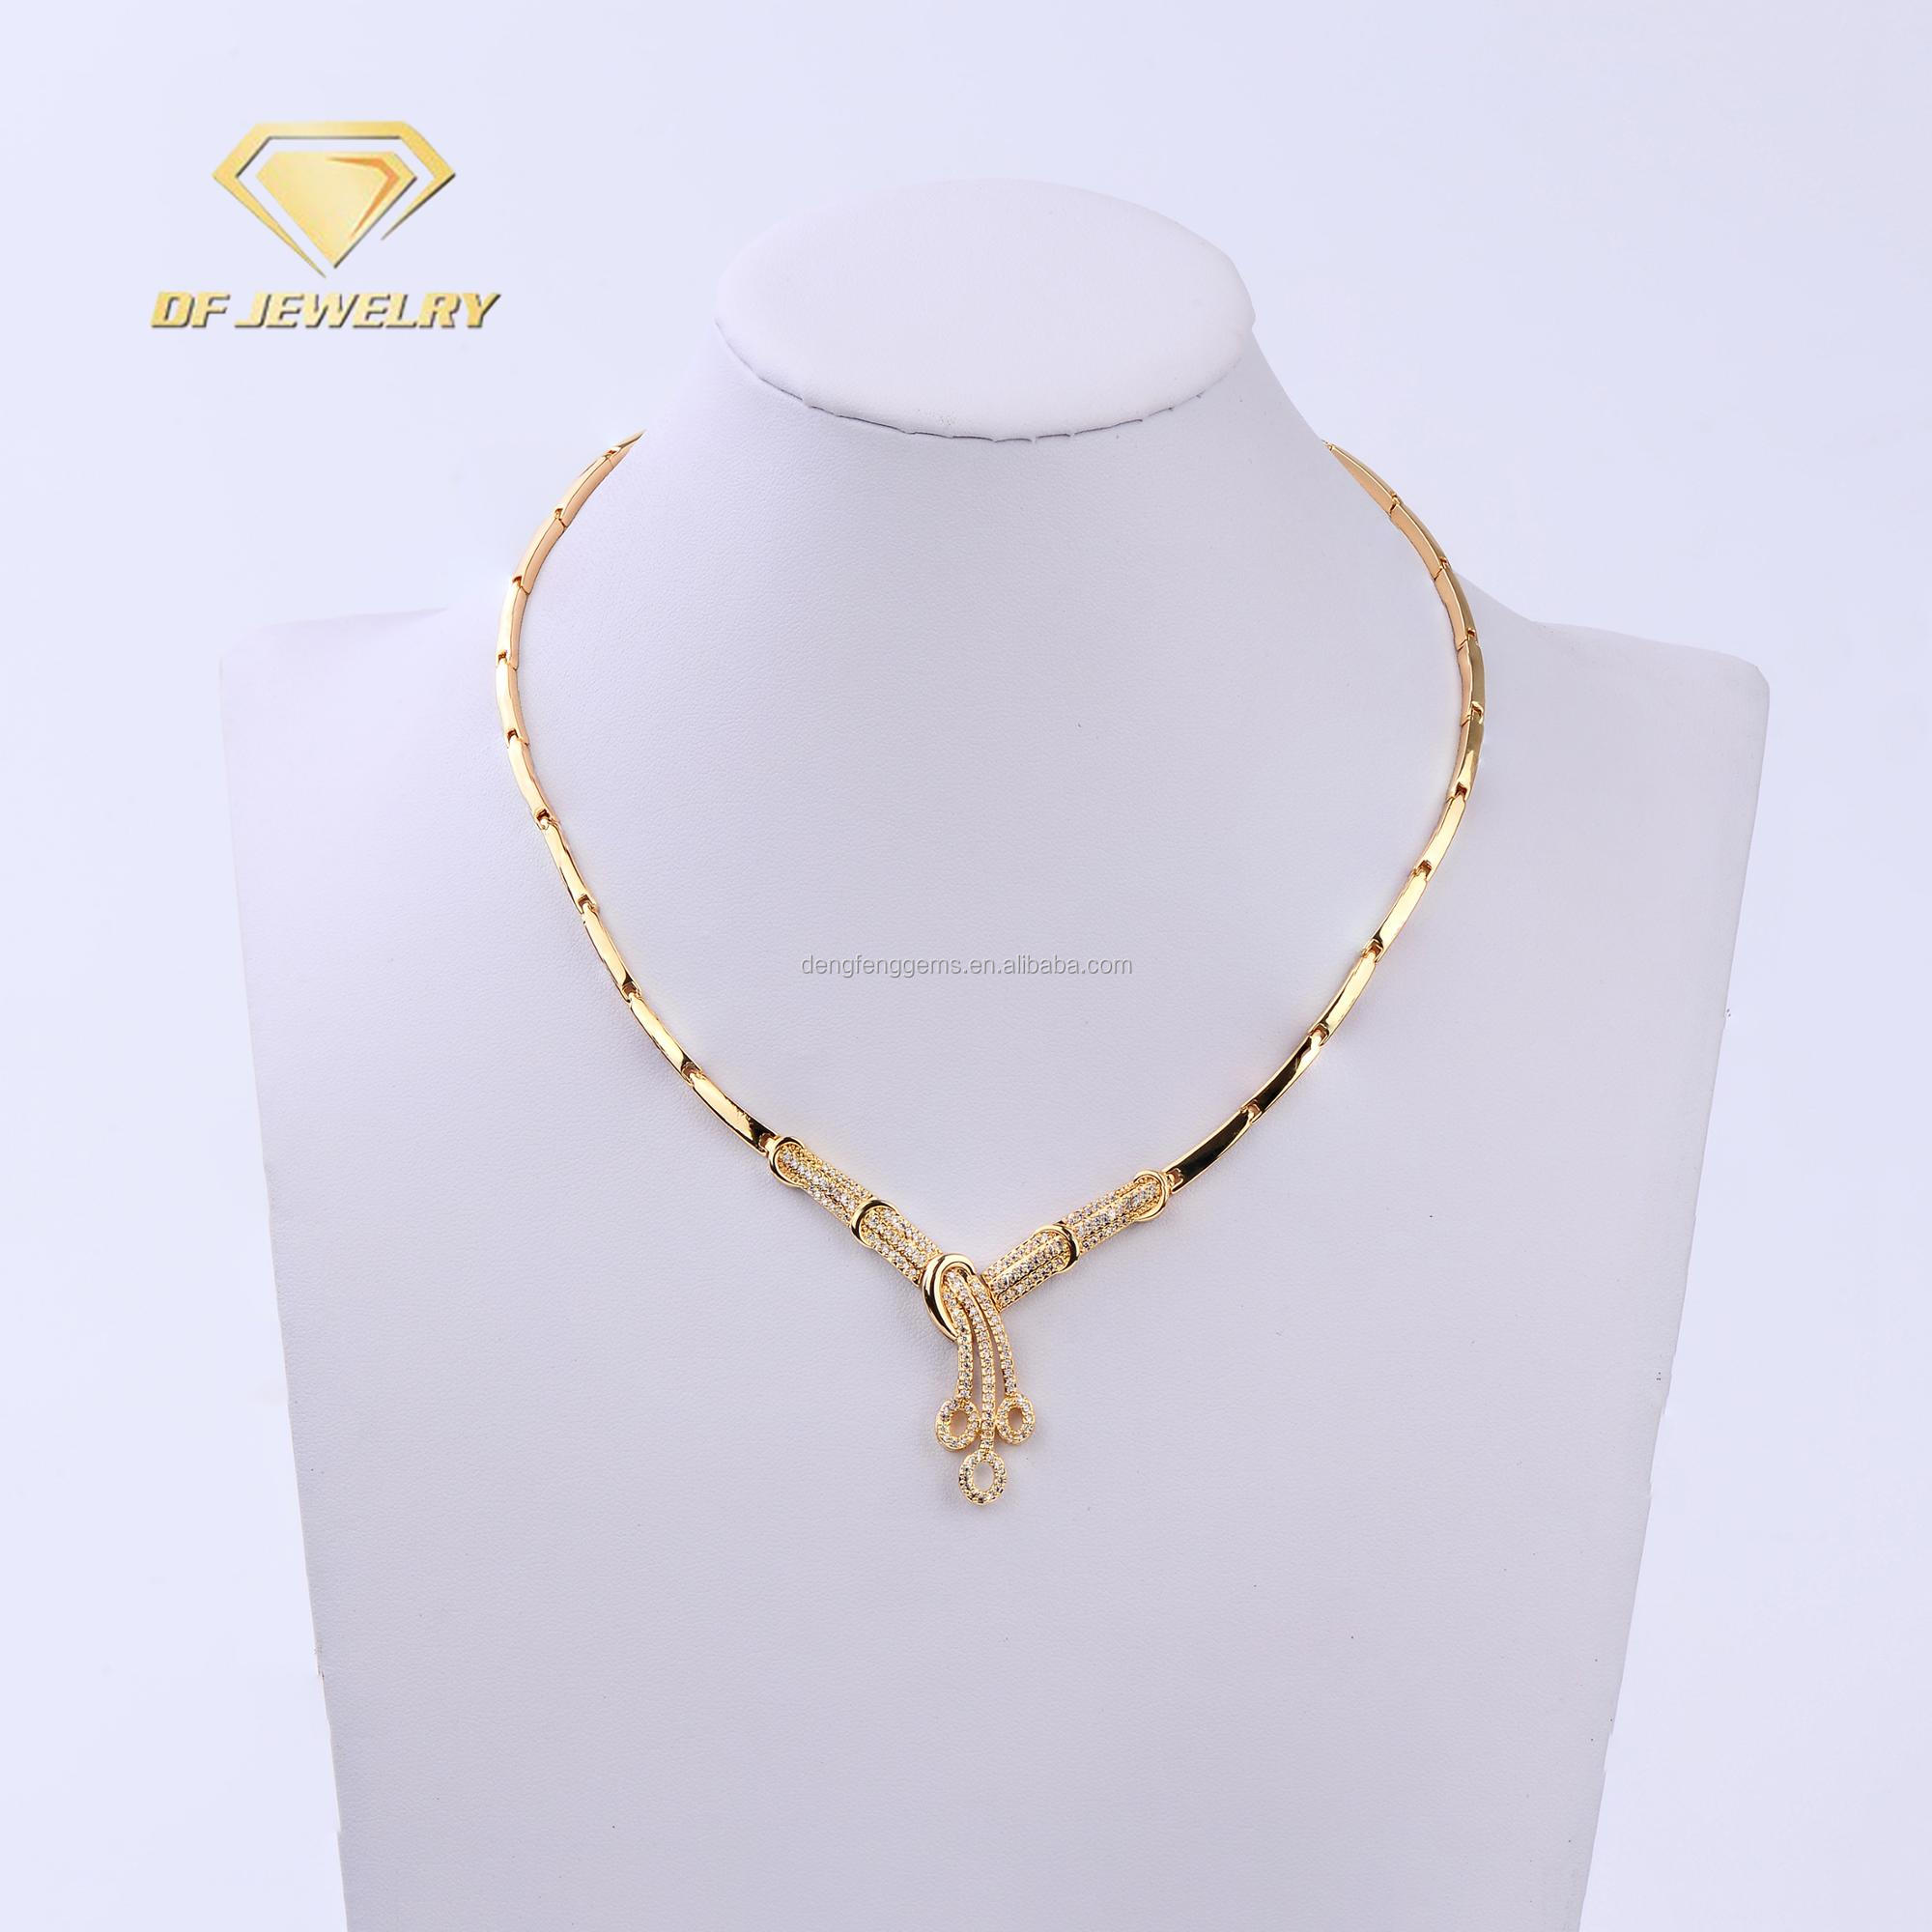 Cheap Wholesale AAAAA Gold Luxury Brass Wedding Stone Jewelry Set